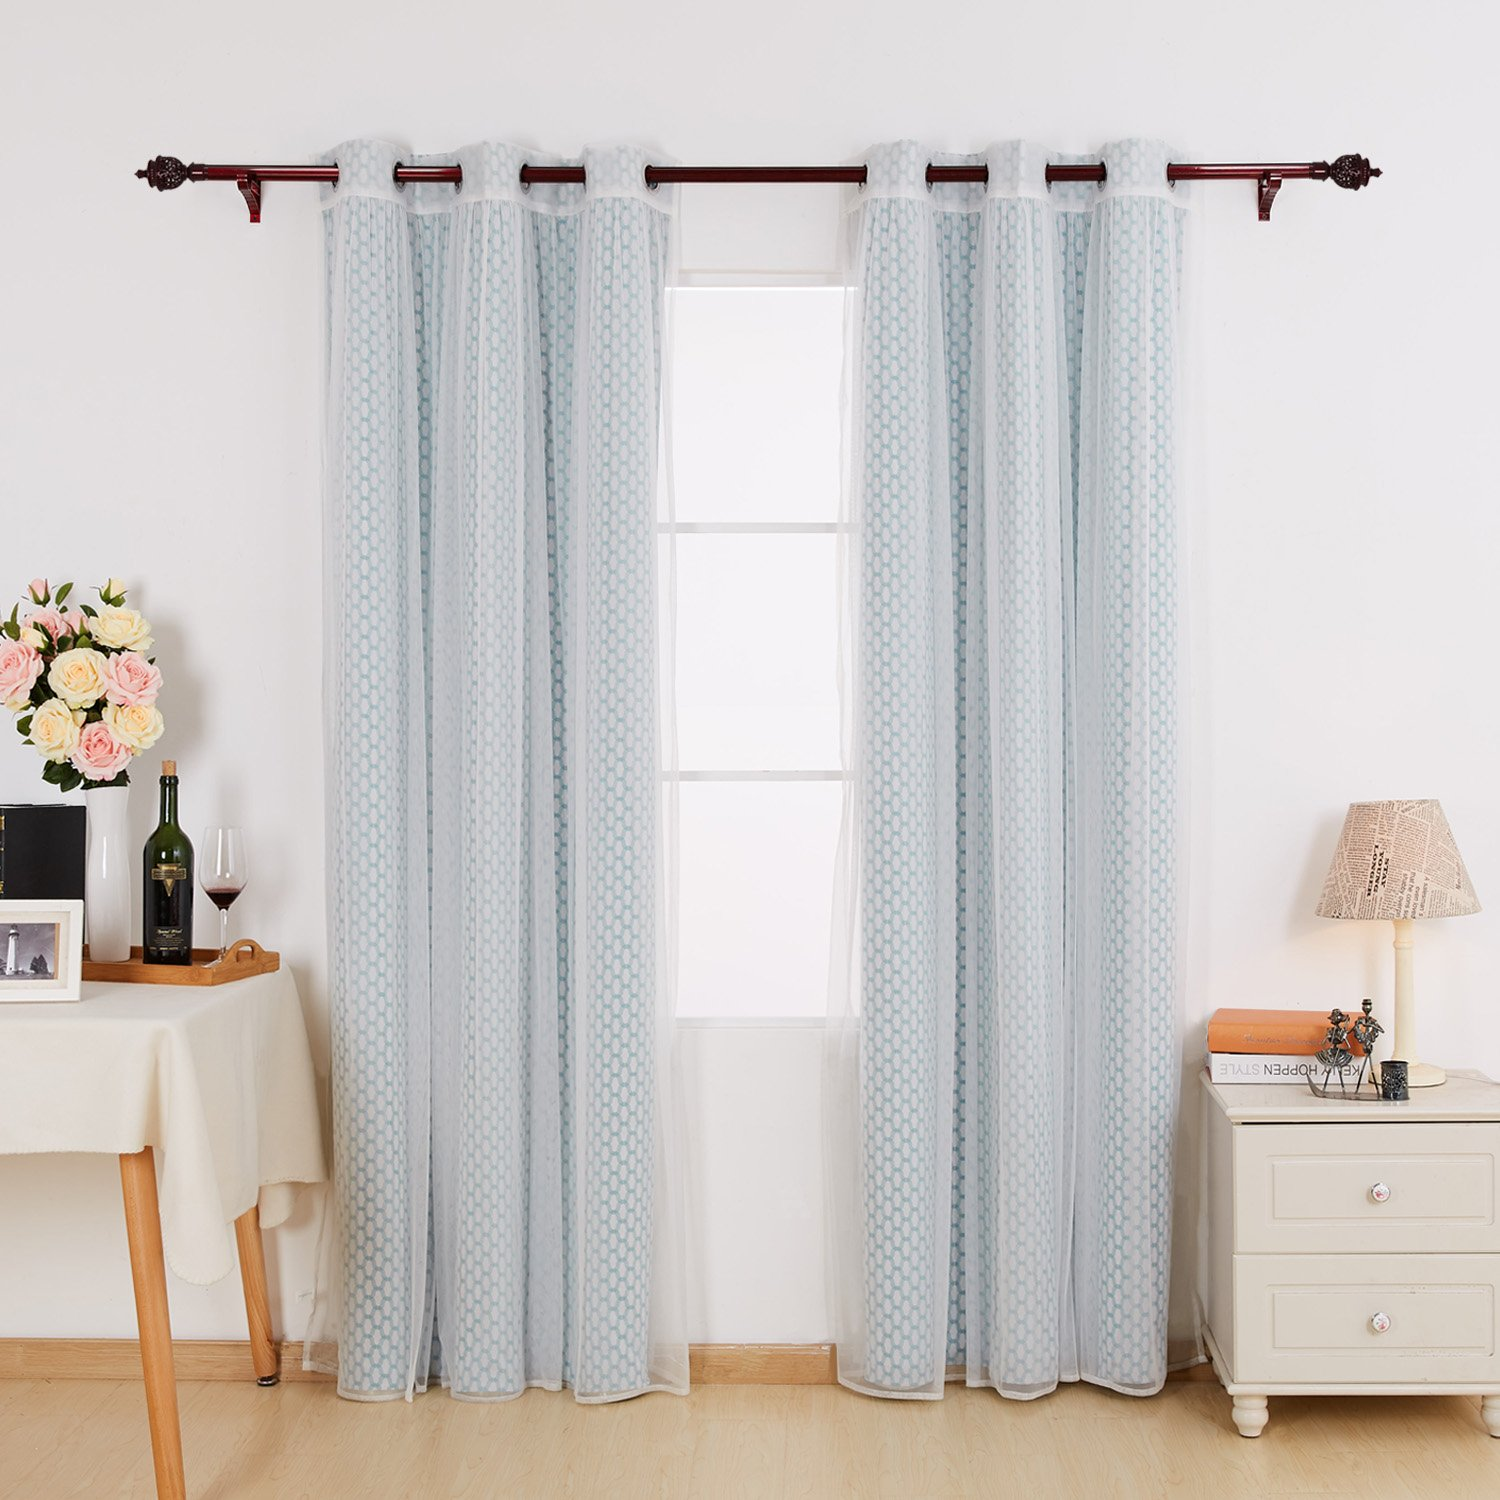 lined the ready target uk from half drapes belgian drapery sheerlinen unique like blackout sanderson short look window these fabrics natural ikea inch dandelion bedroom linen panels aqua bedding clocks curtains in made white faux price allowing curtain ones upholstery to fabric